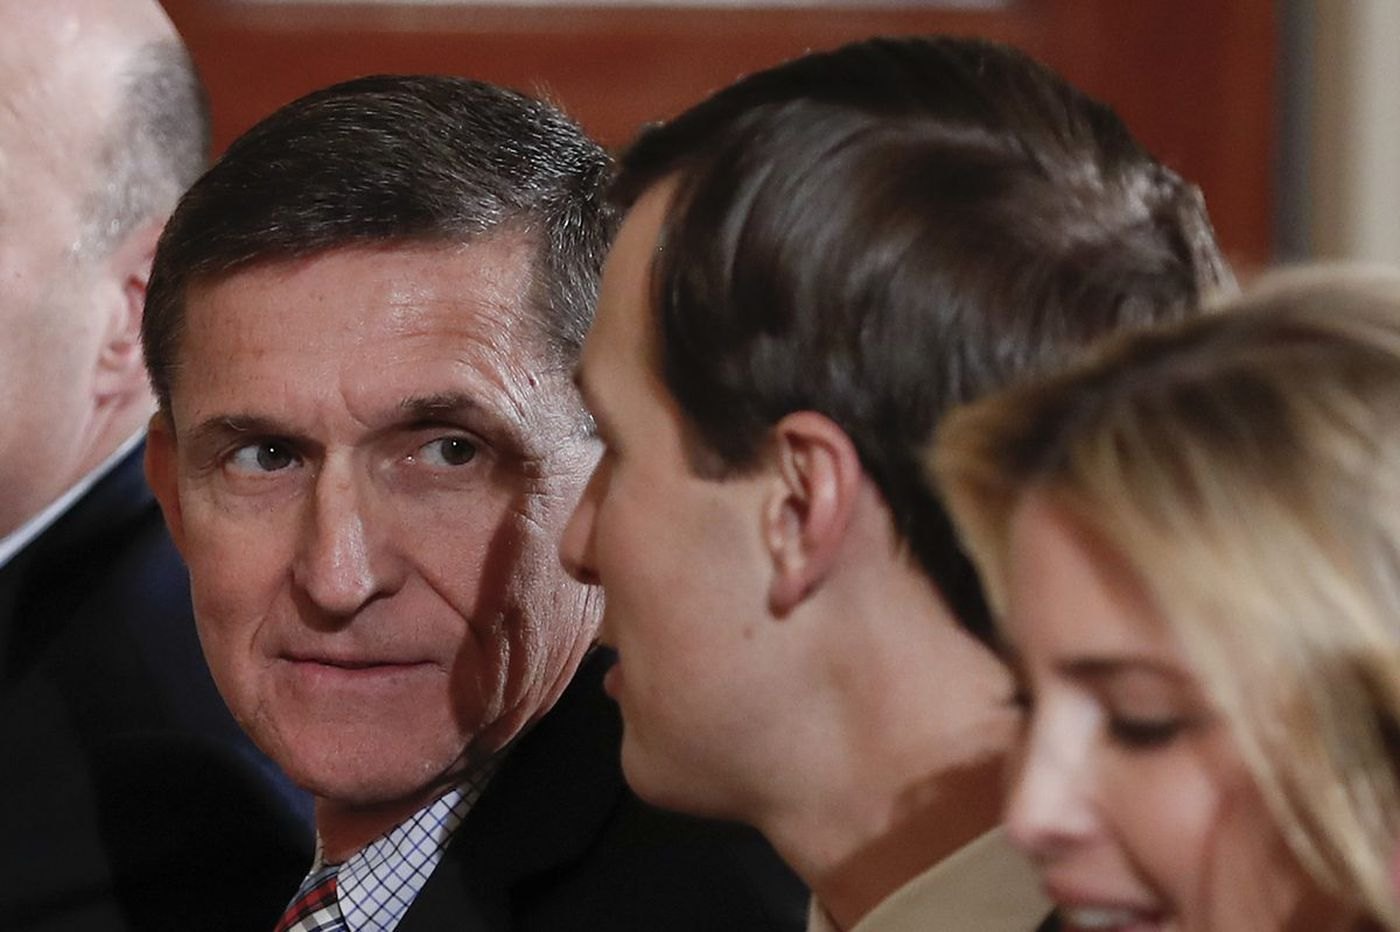 Michael Flynn pleads guilty to lying to FBI about contacts with Russia